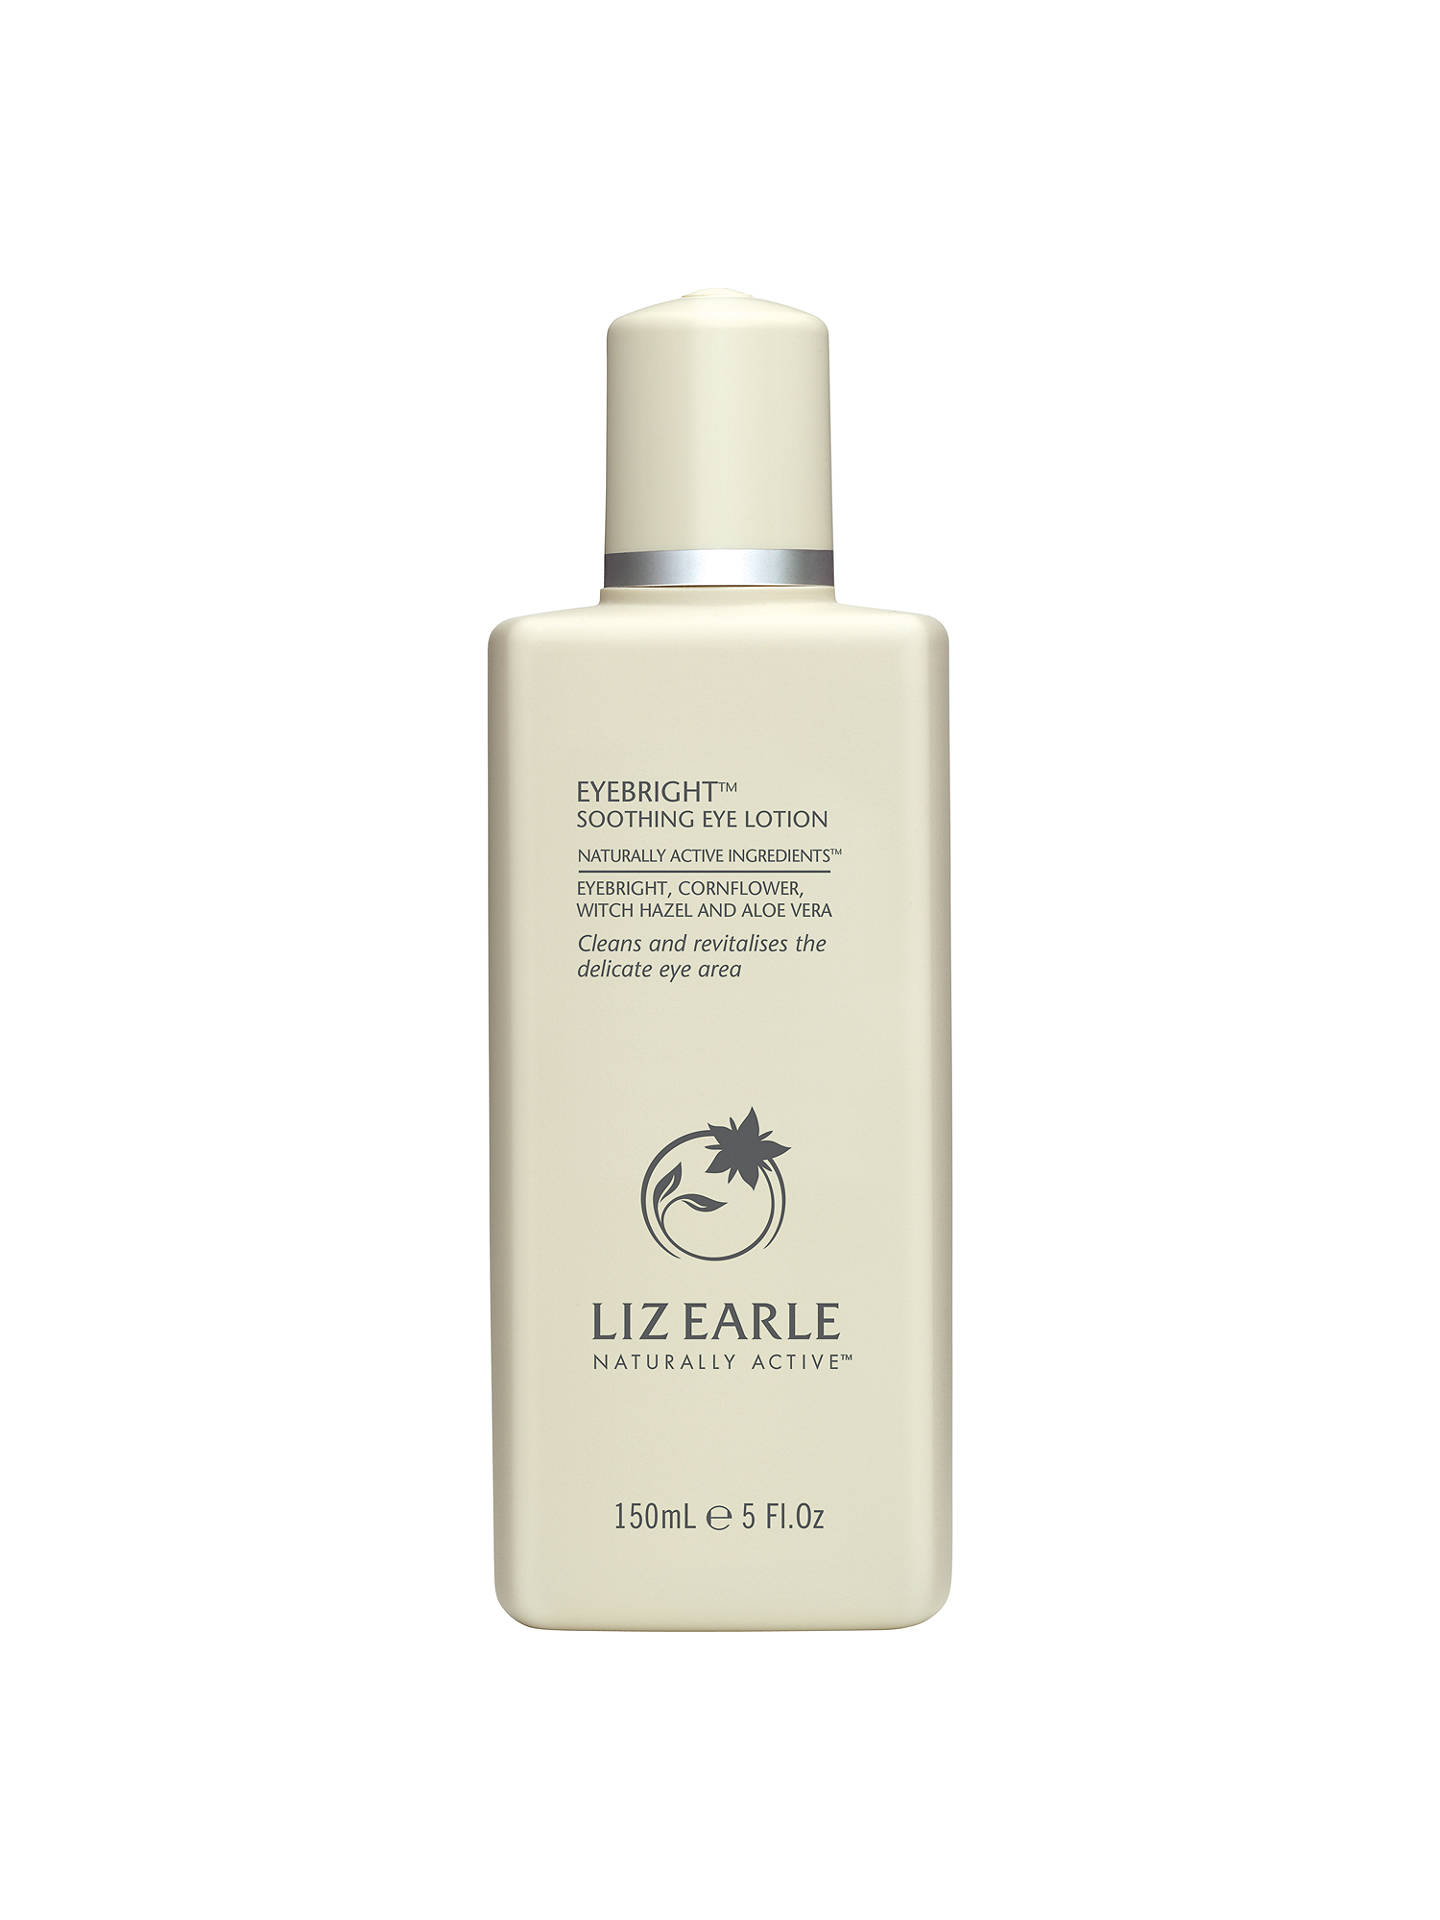 BuyLiz Earle Eyebright™ Soothing Eye Lotion, 150ml Online at johnlewis.com